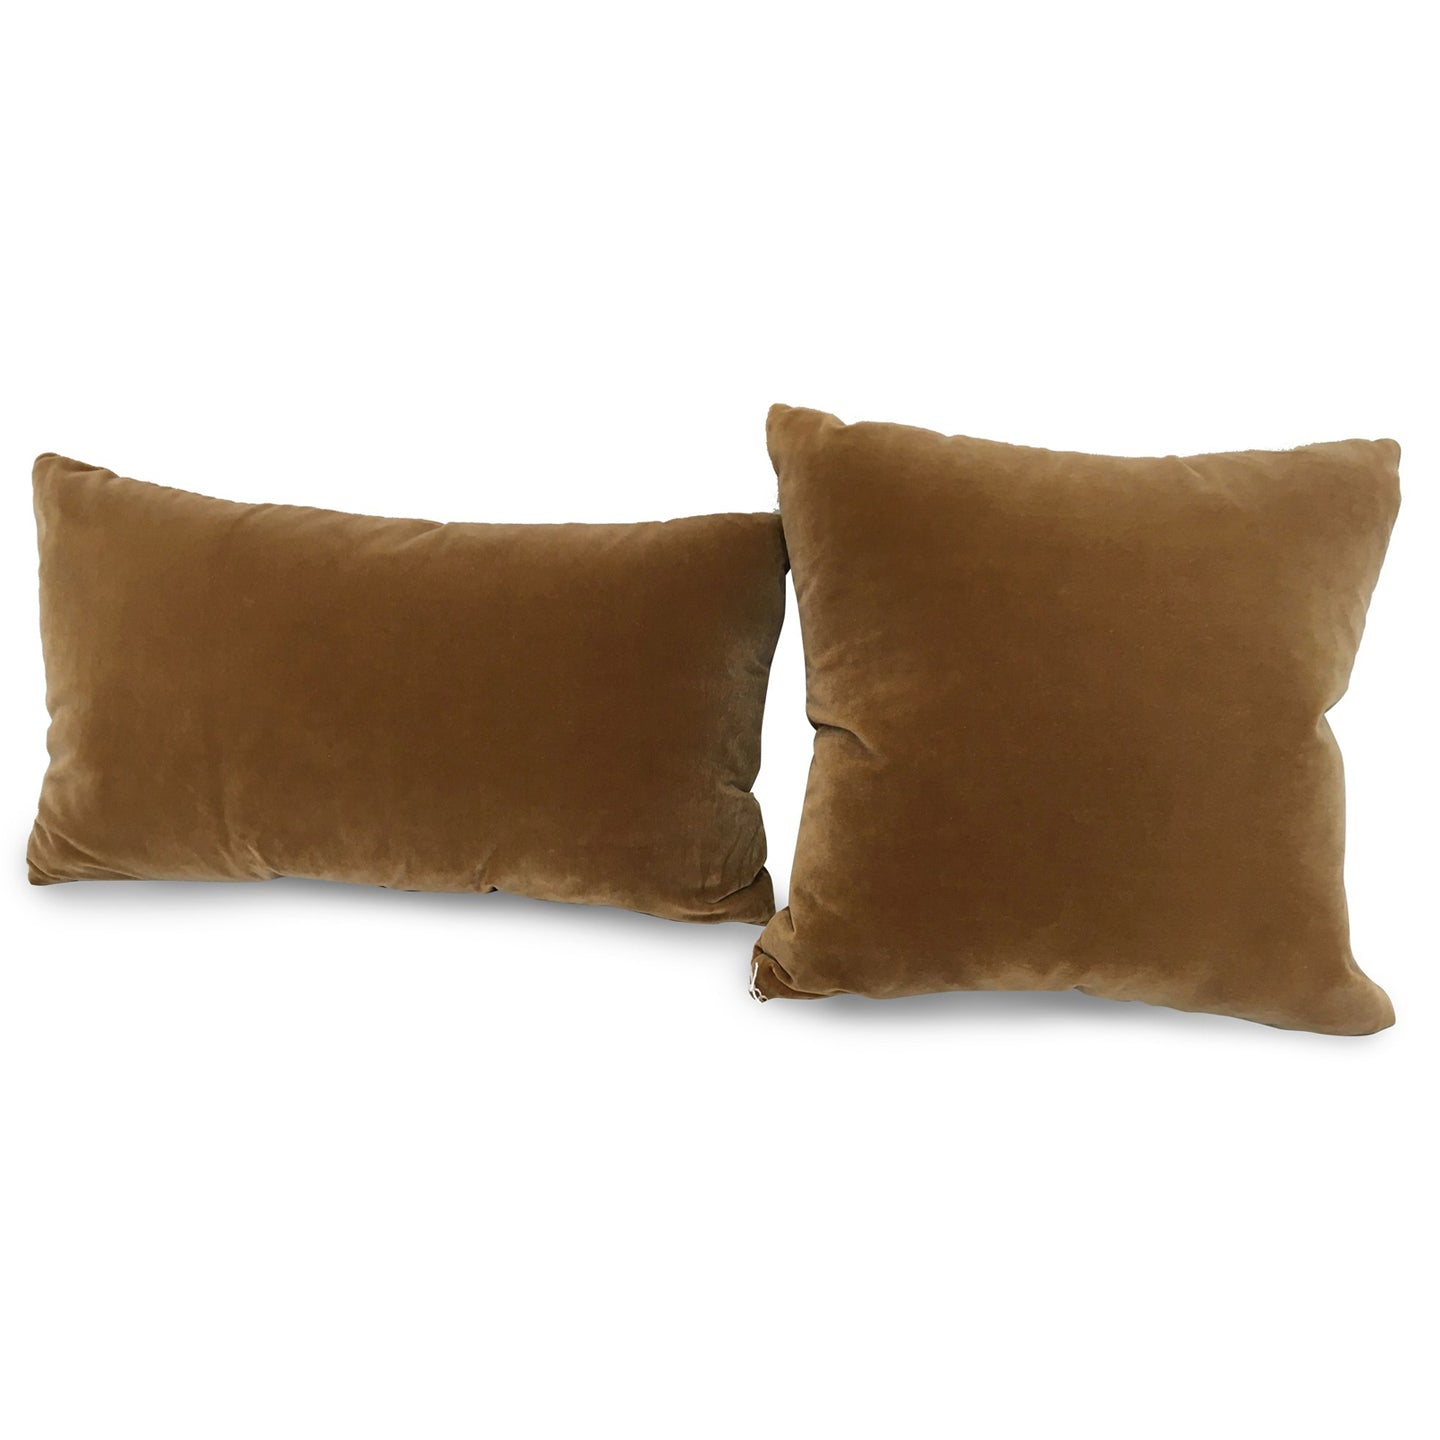 COTTON CASHMERE PILLOWS